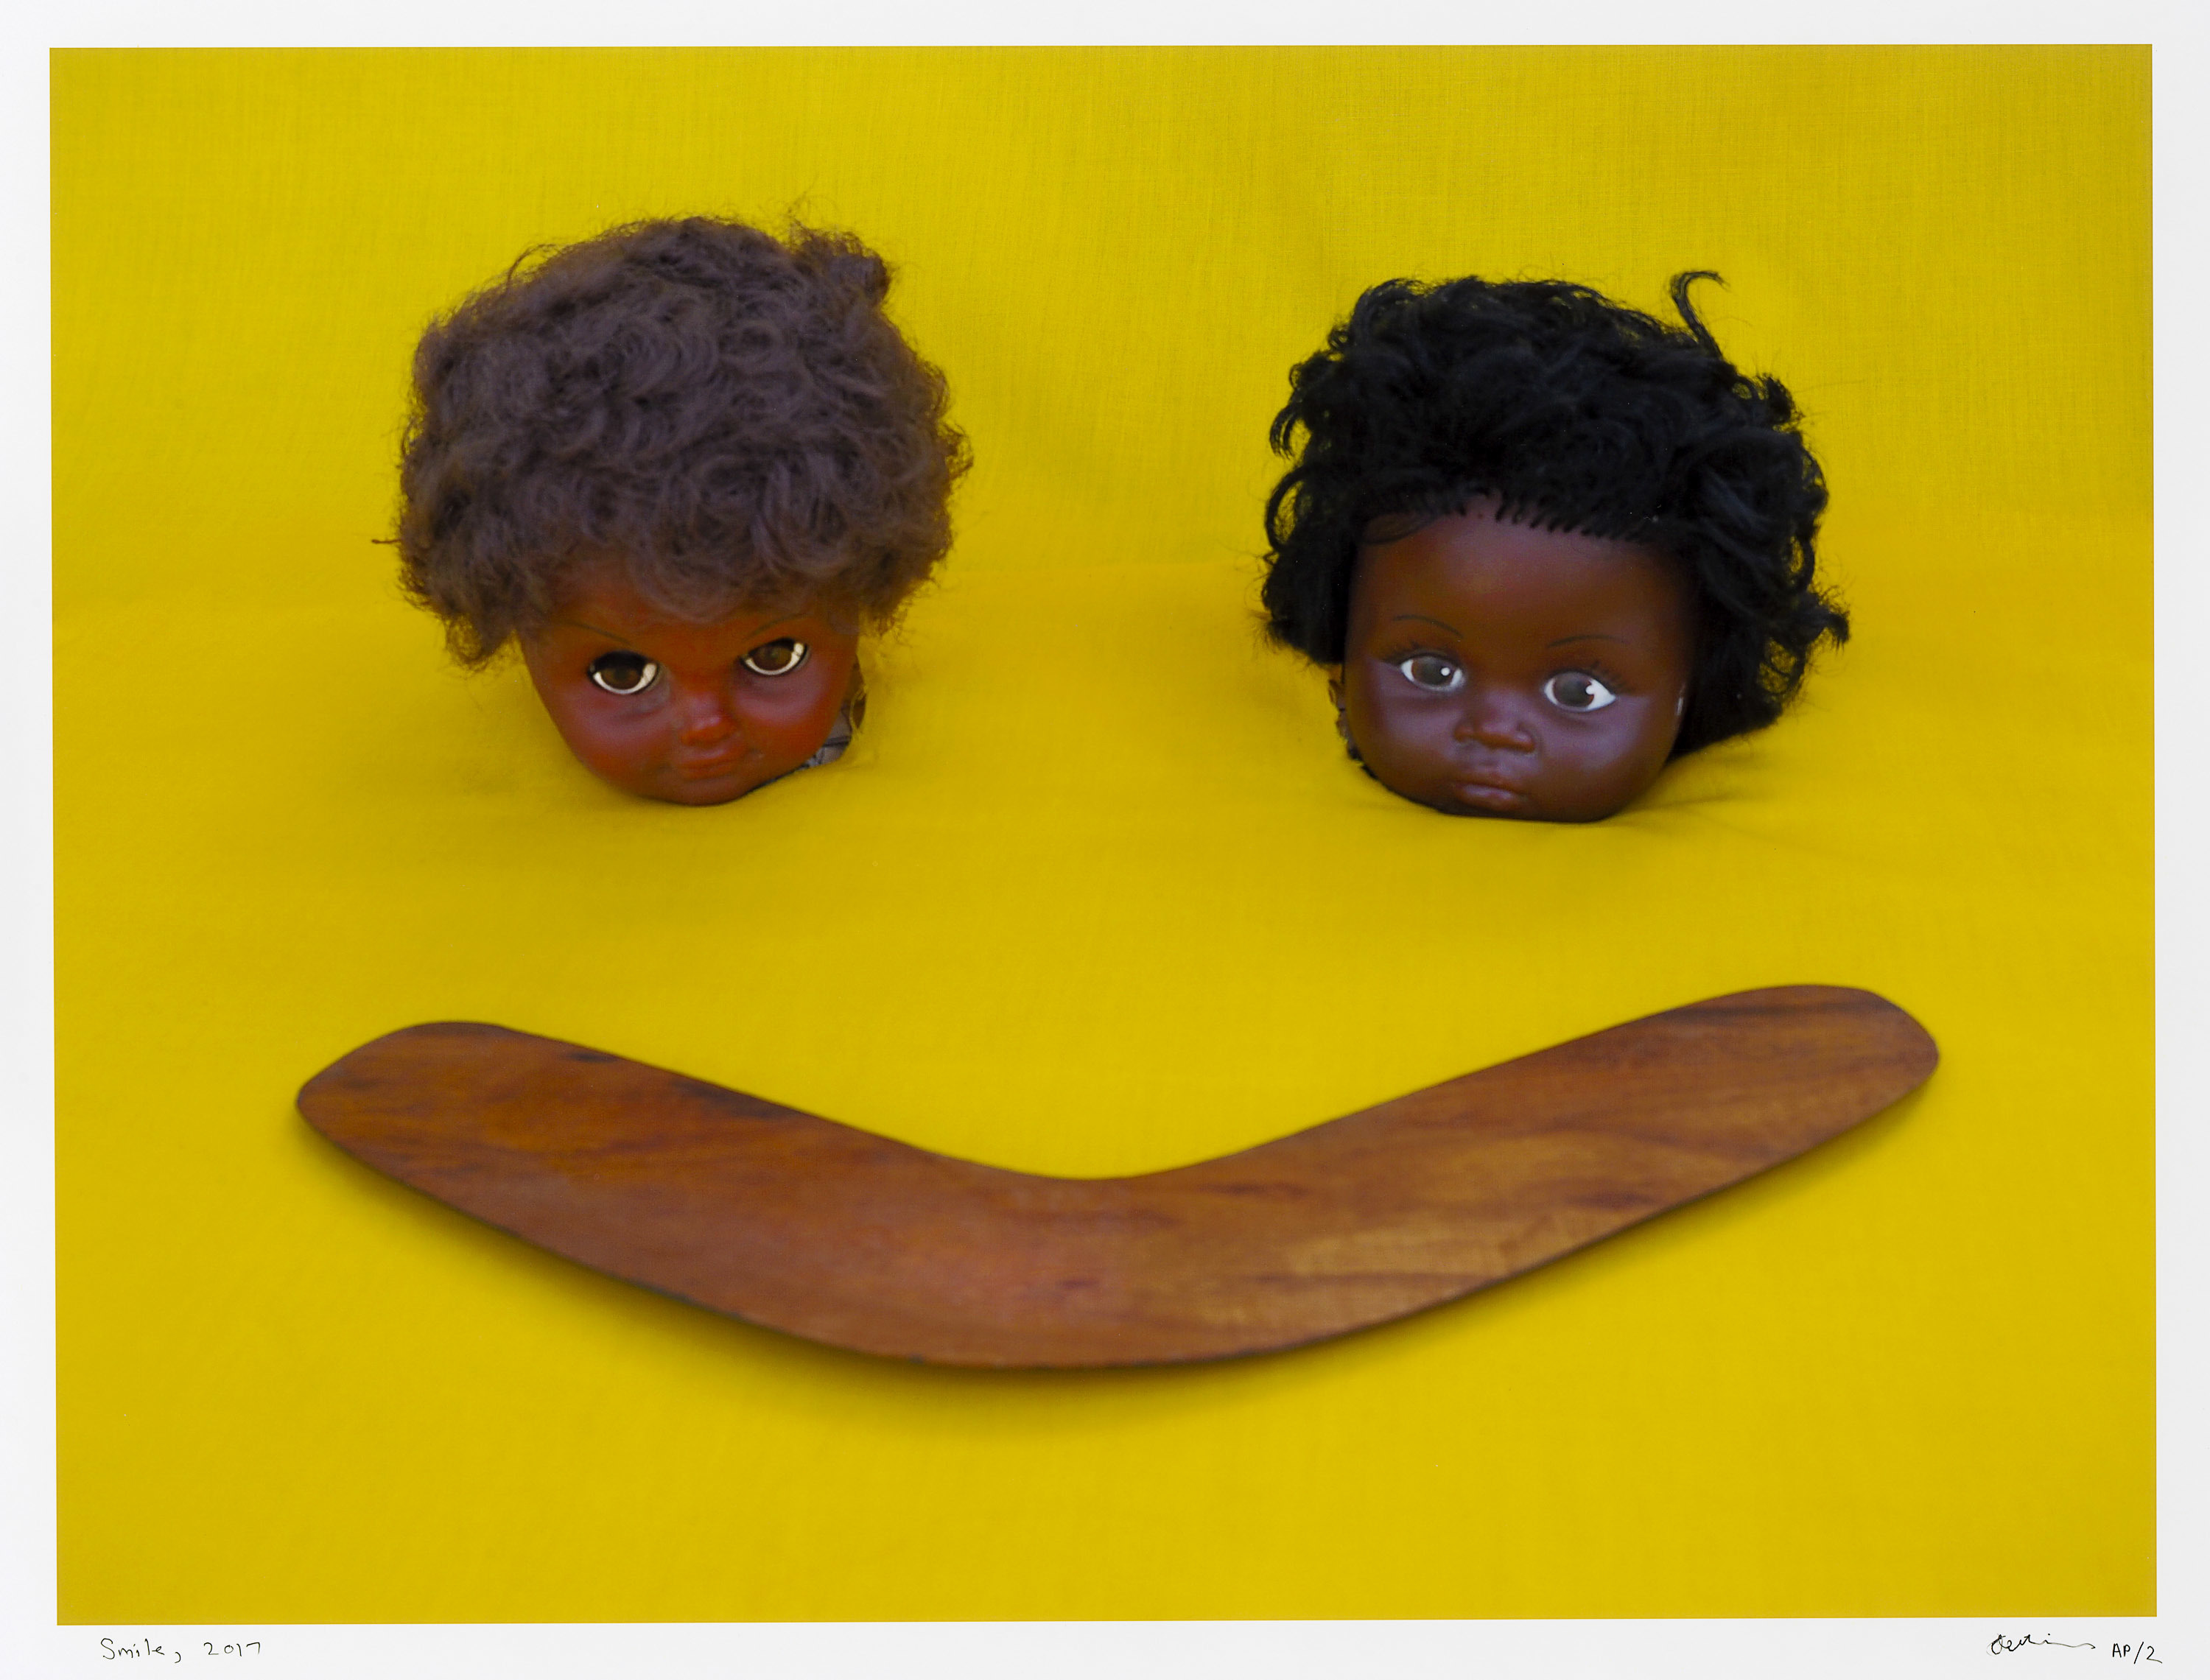 Two doll heads on a yellow backdrop with a wooden boomerang in front of them